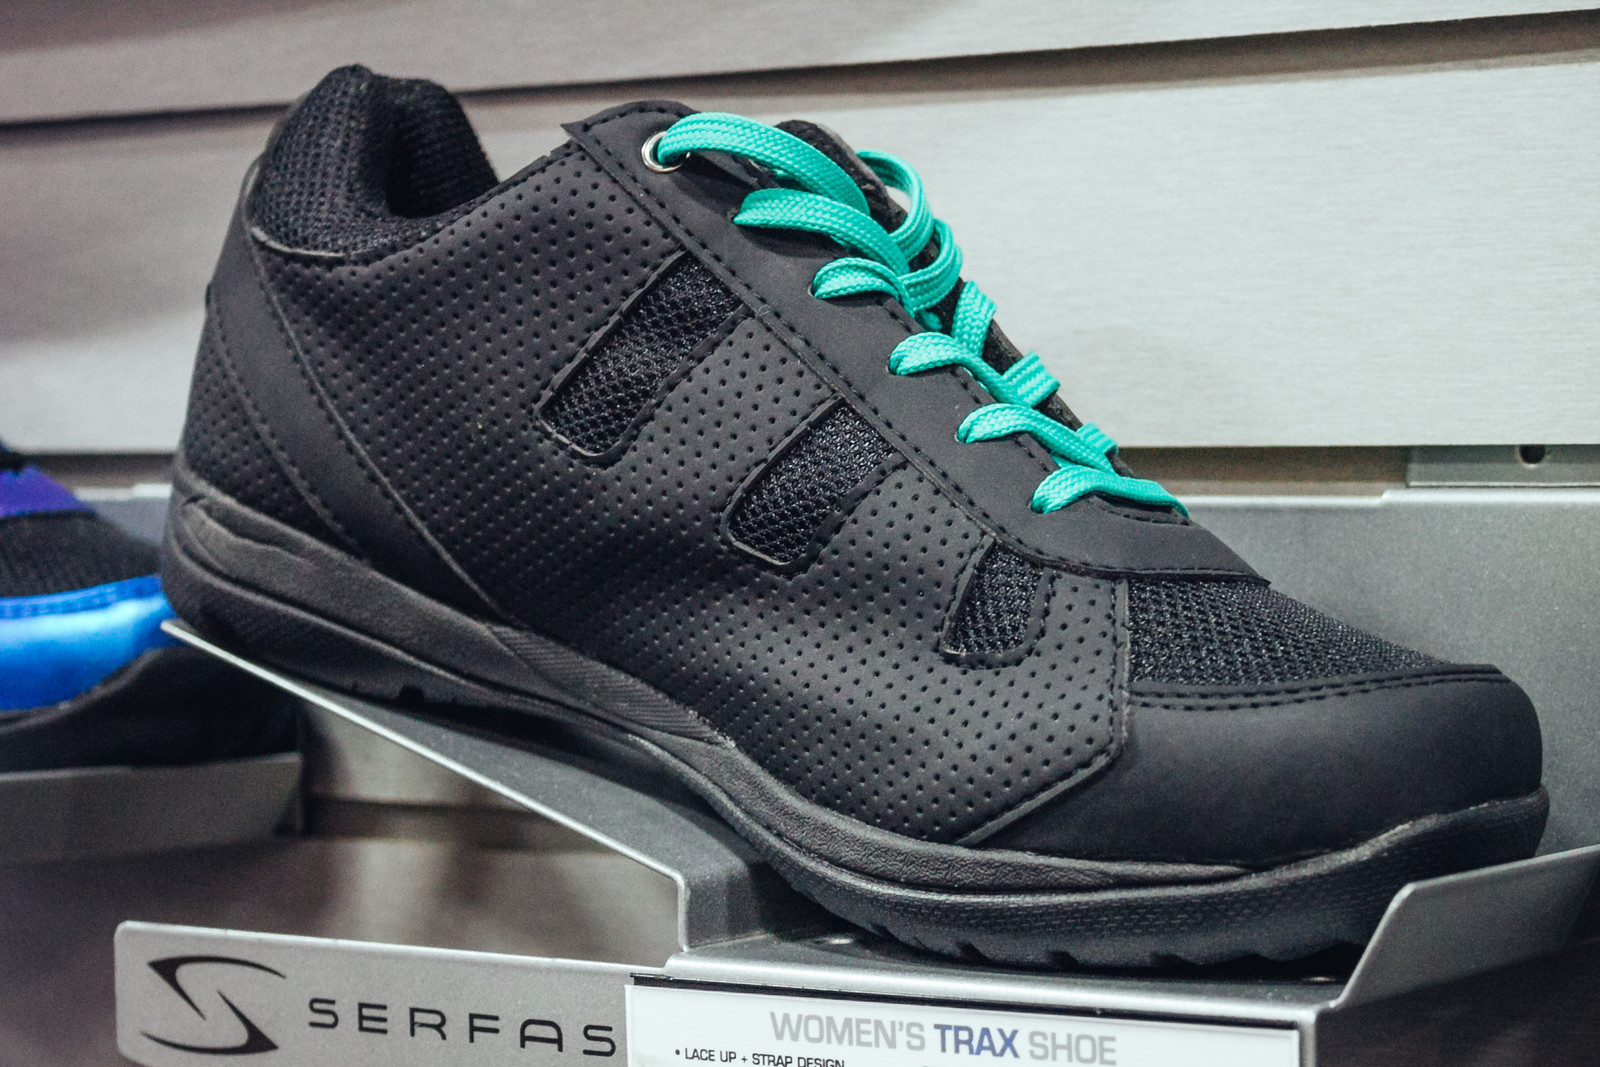 Updated Serfas Trax Shoes - INTERBIKE - 2017 Women's Mountain Bike Gear - Mountain Biking Pictures - Vital MTB